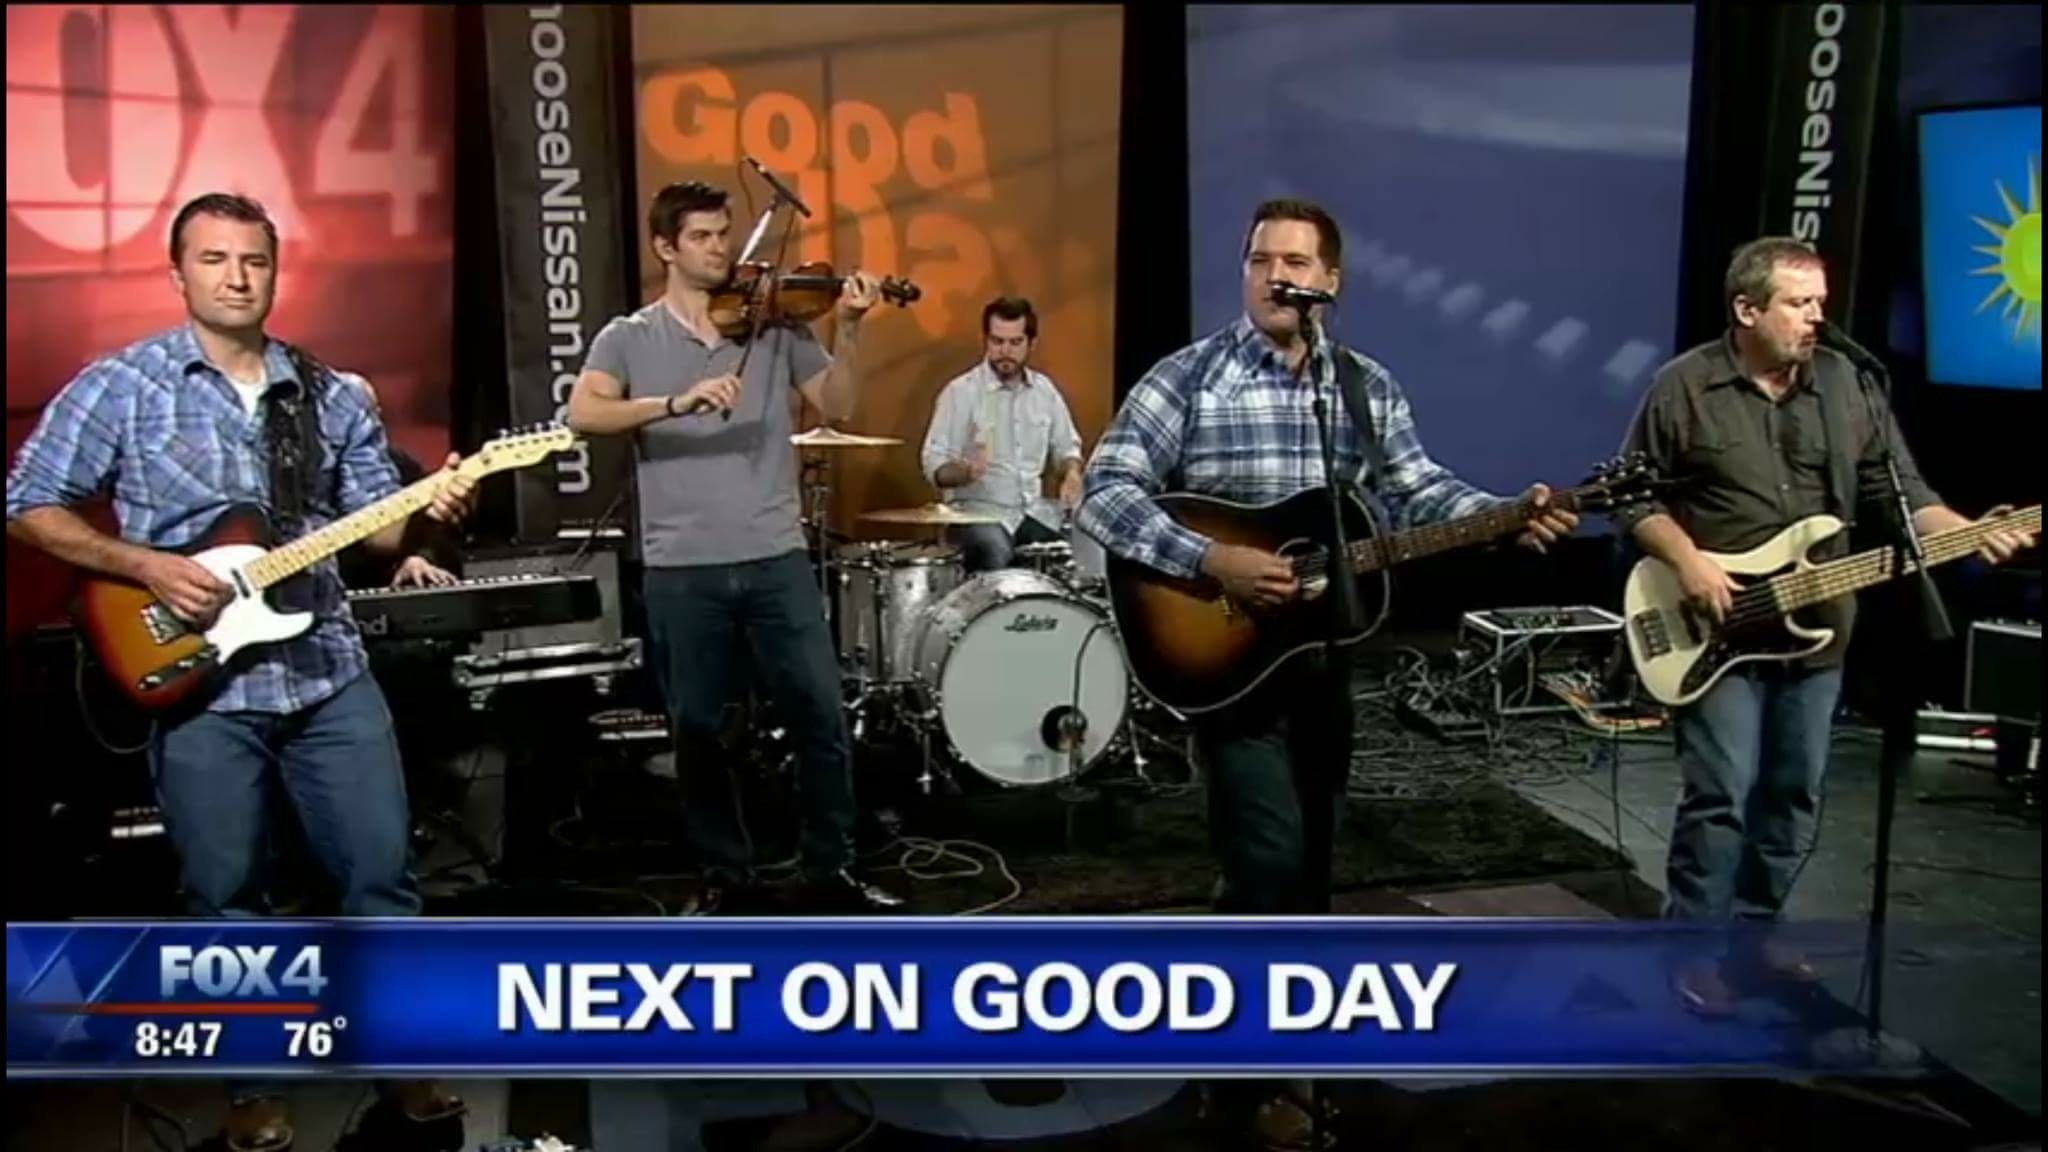 Good Day Fox 4